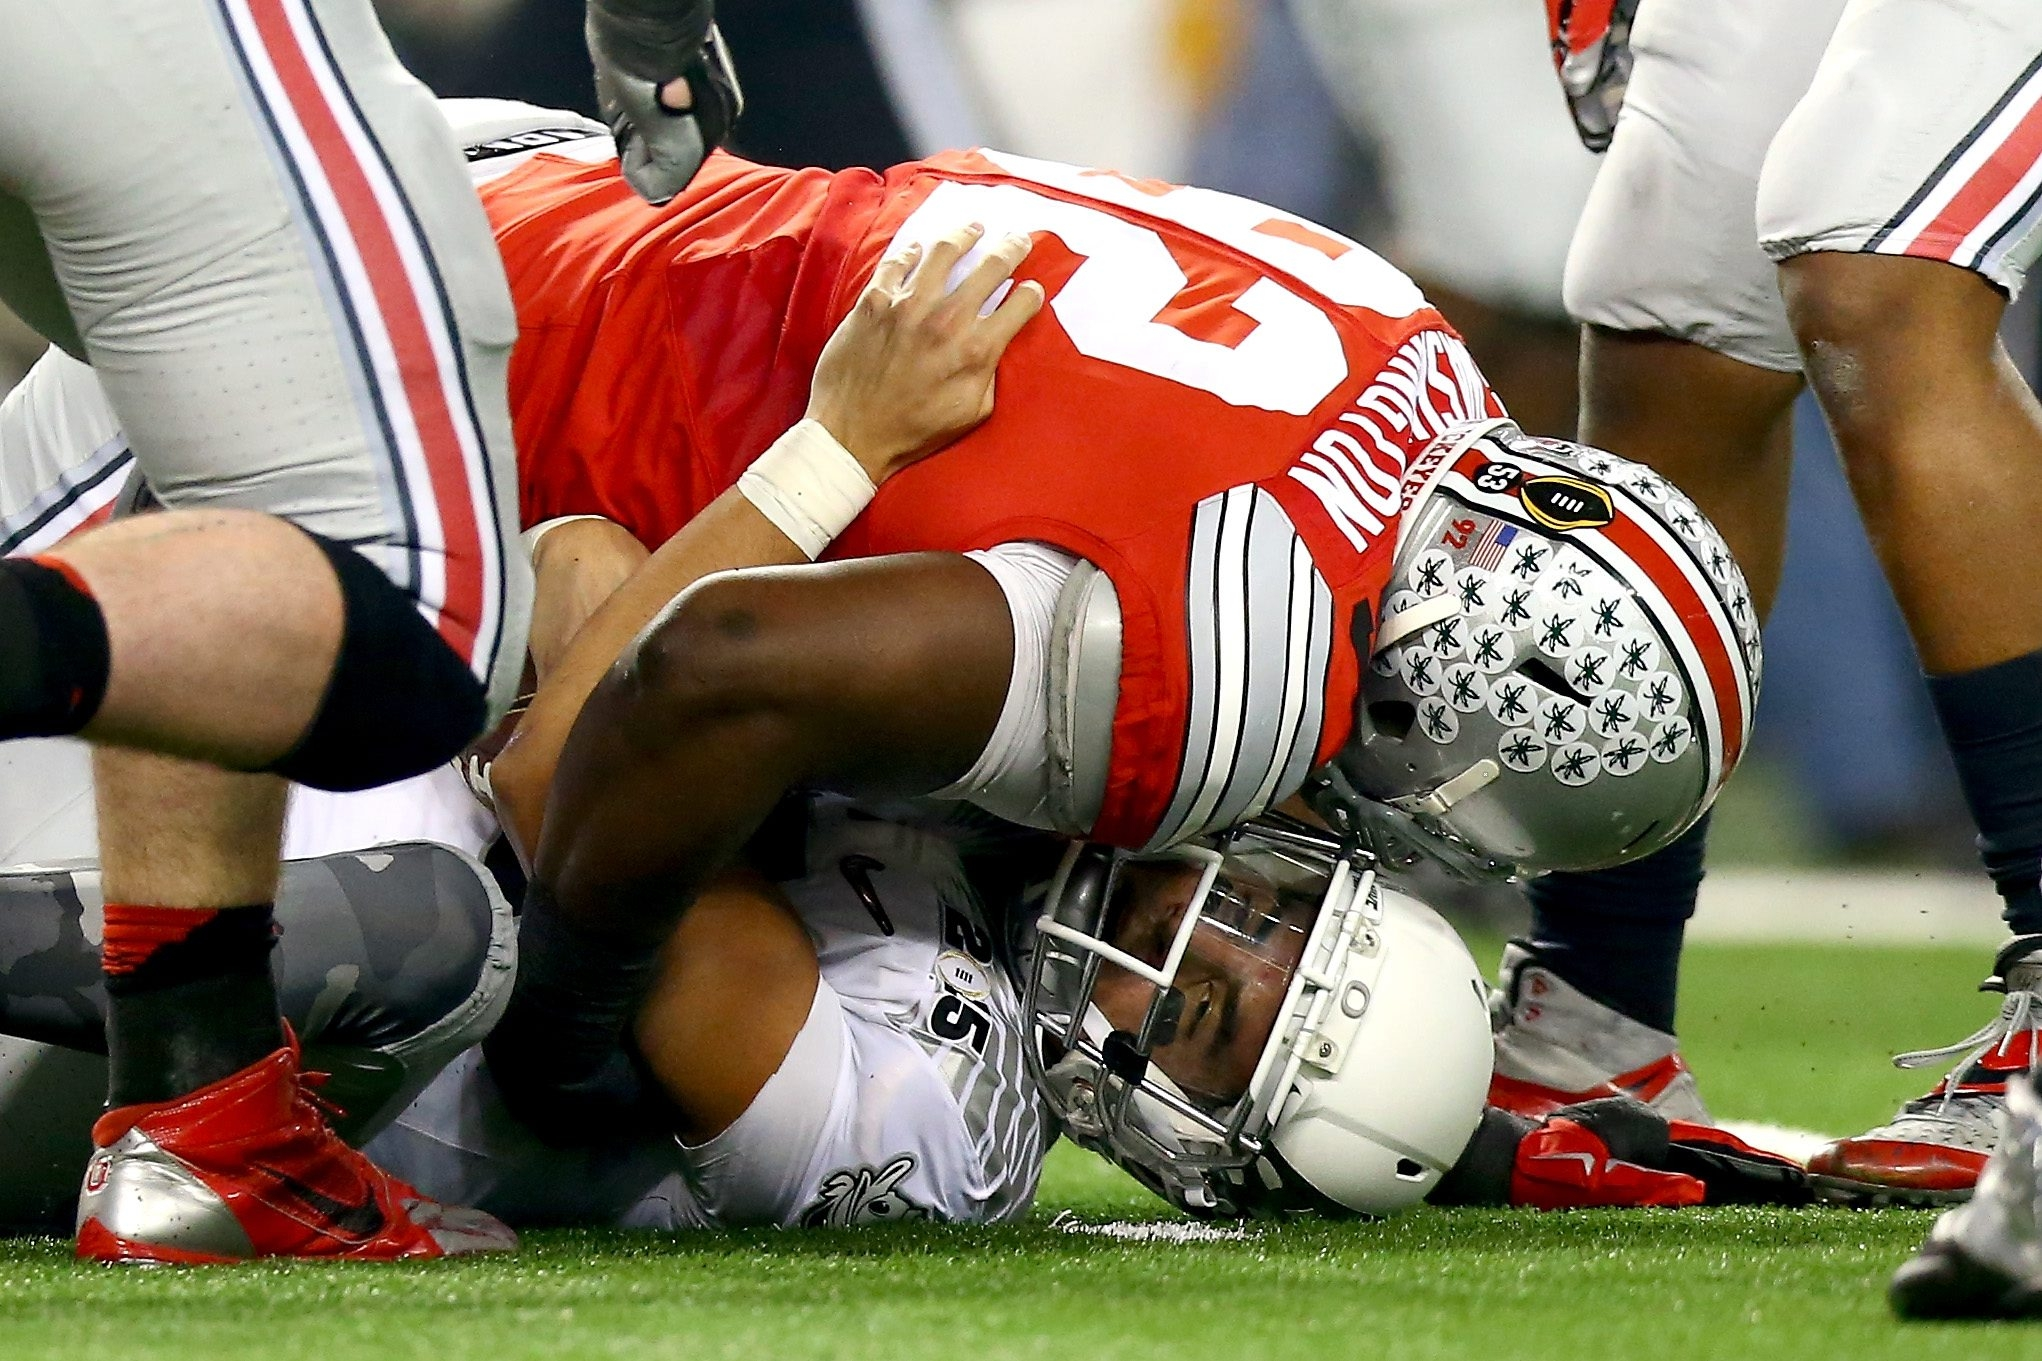 ARLINGTON, TX - JANUARY 12:  Defensive lineman Adolphus Washington #92 of the Ohio State Buckeyes sacks quarterback Marcus Mariota #8 of the Oregon Ducks in the second quarter during the College Football Playoff National Championship Game at AT&T Stadium on January 12, 2015 in Arlington, Texas.  (Photo by Ronald Martinez/Getty Images)